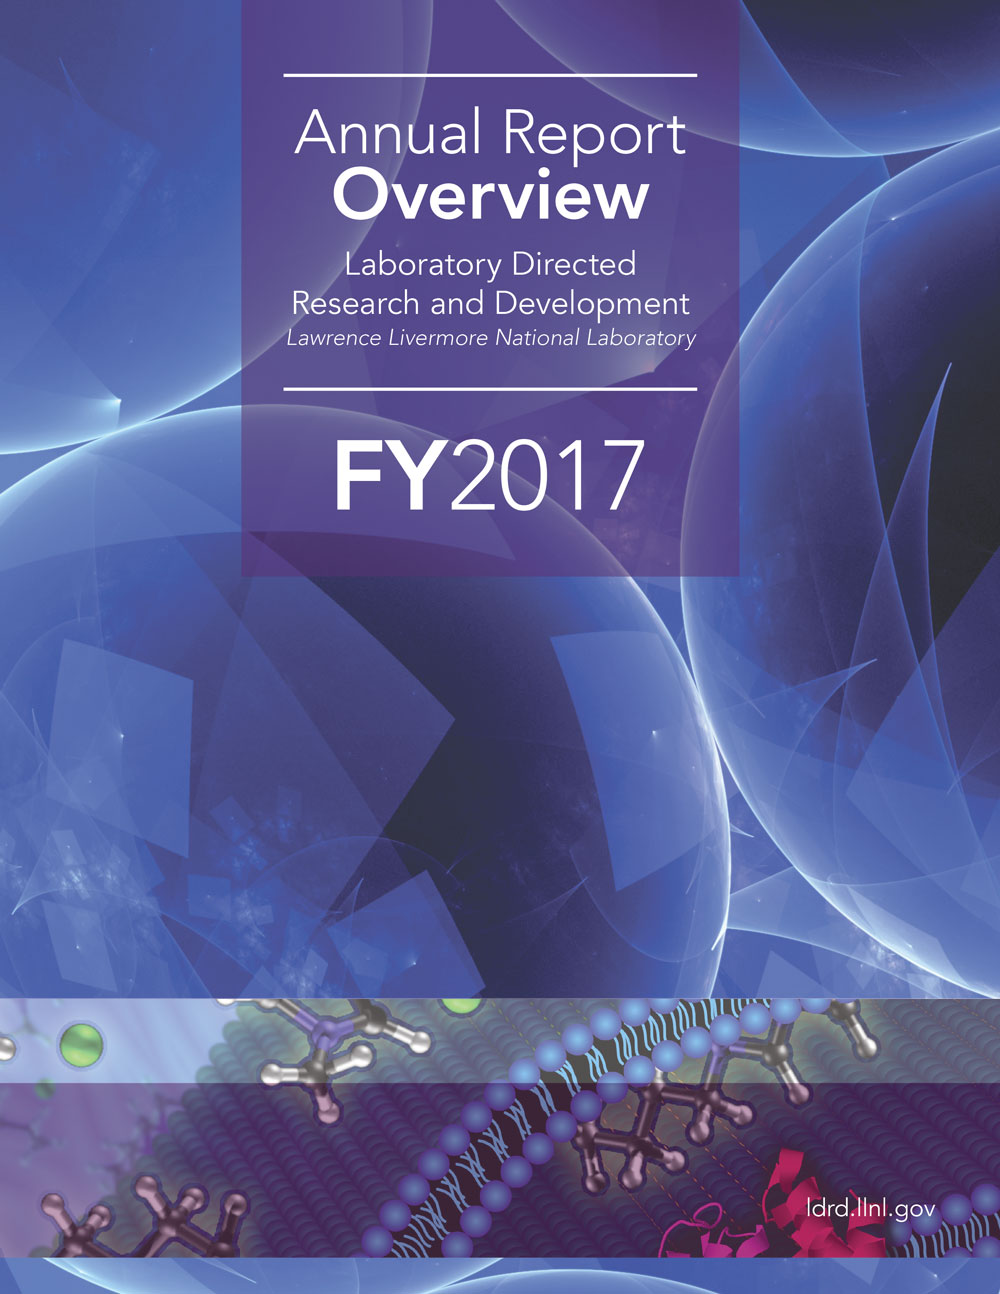 CoverofLLNLFY2017LDRD-AnnualReport